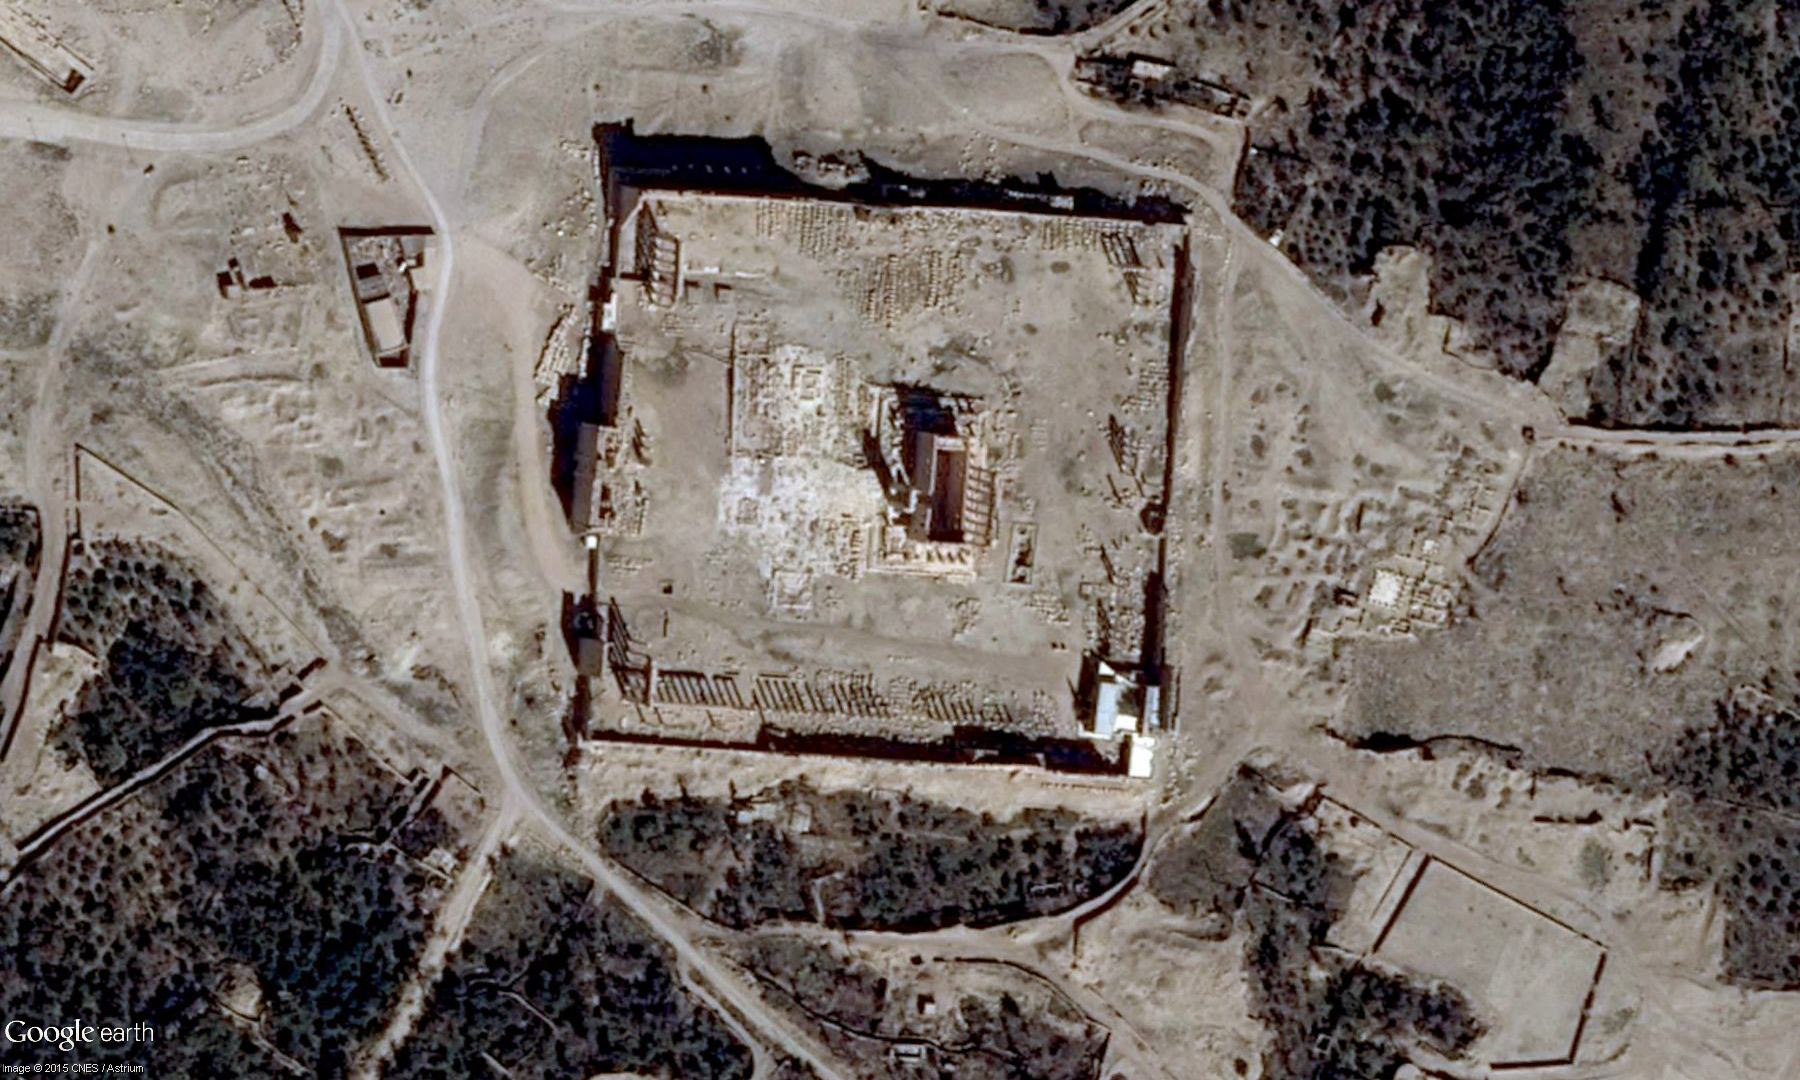 Satellite view of the Temple of Bel in Palmyra. Photo: Google Earth/Digital Globe.